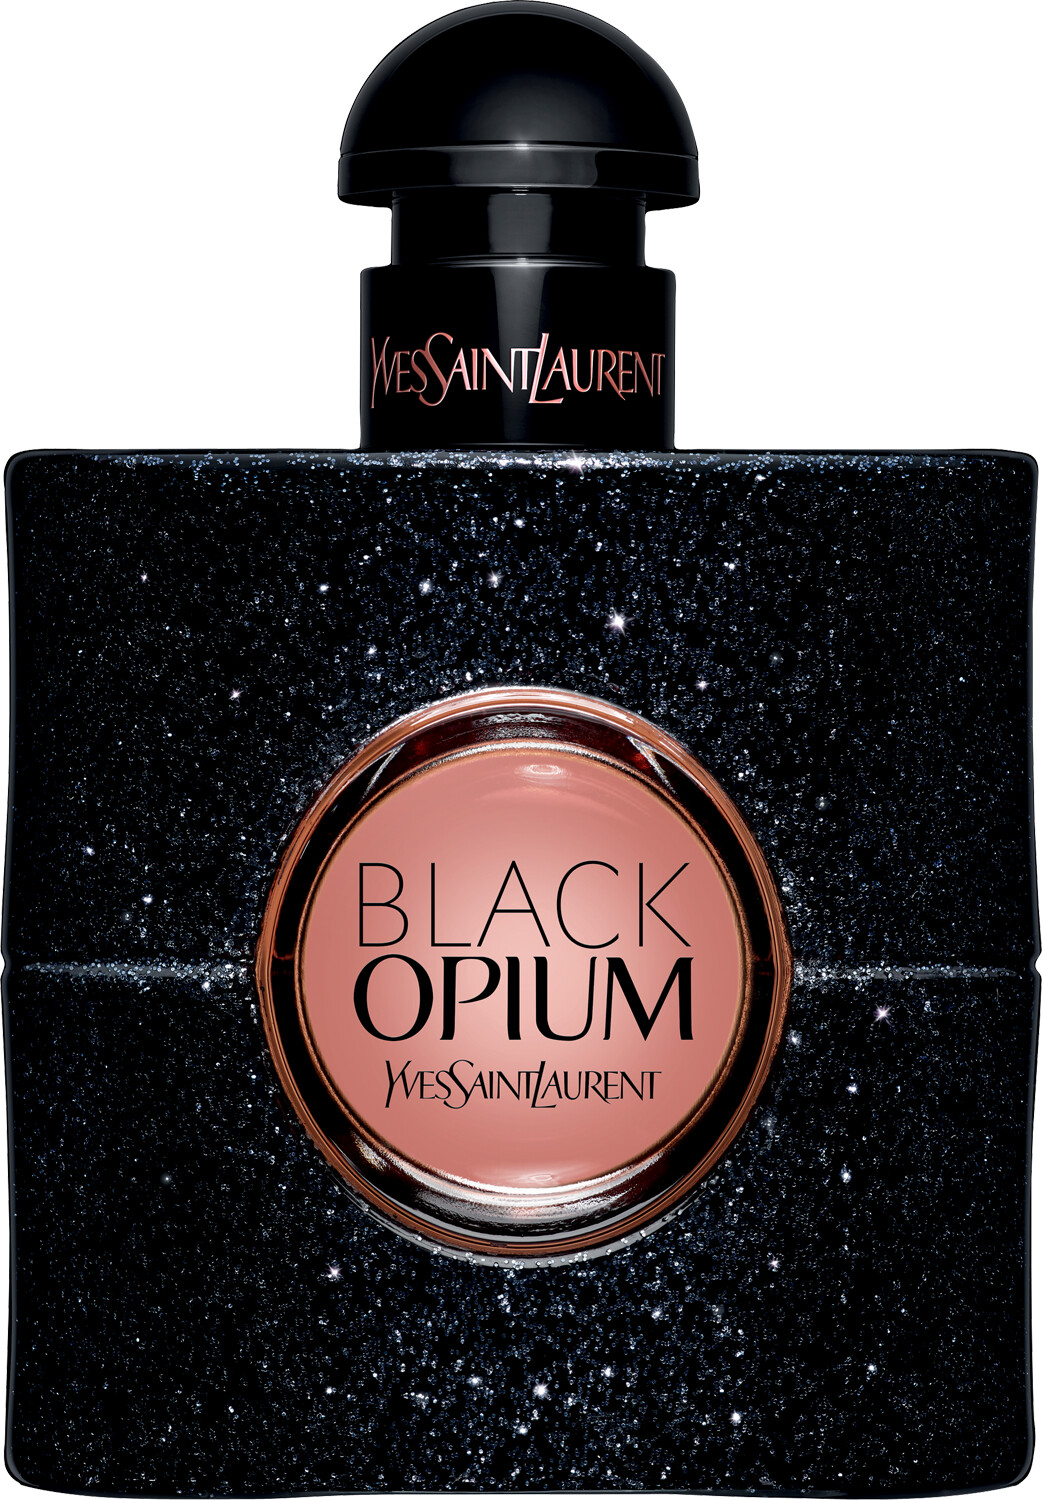 yves saint laurent black opium eau de parfum. Black Bedroom Furniture Sets. Home Design Ideas